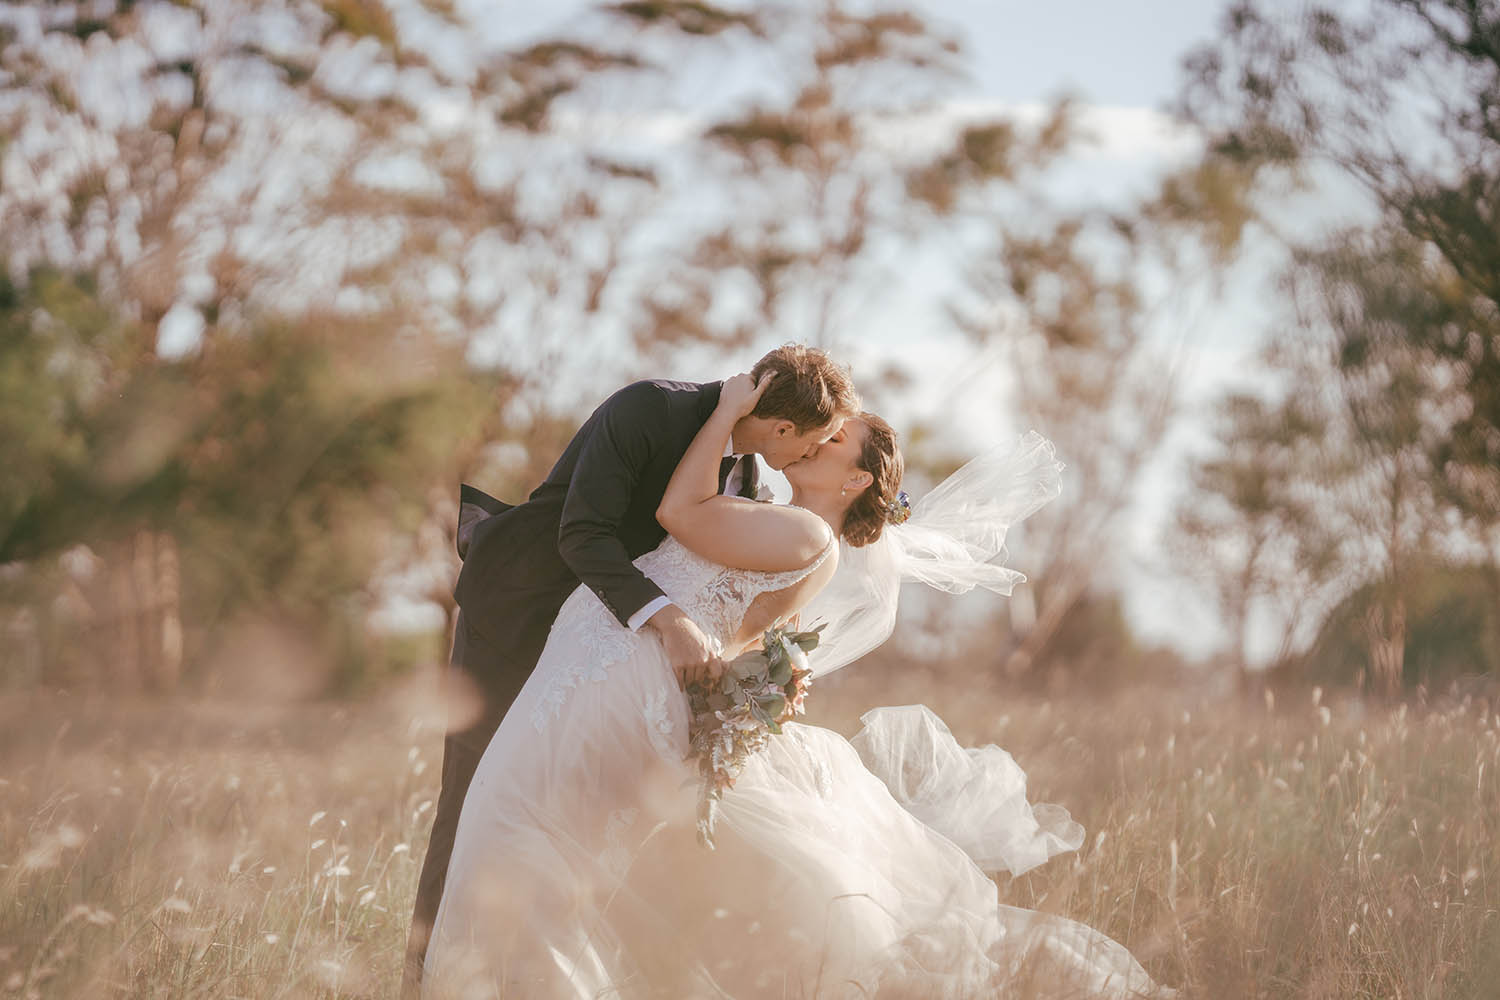 Wedding Photography - Kissing in field